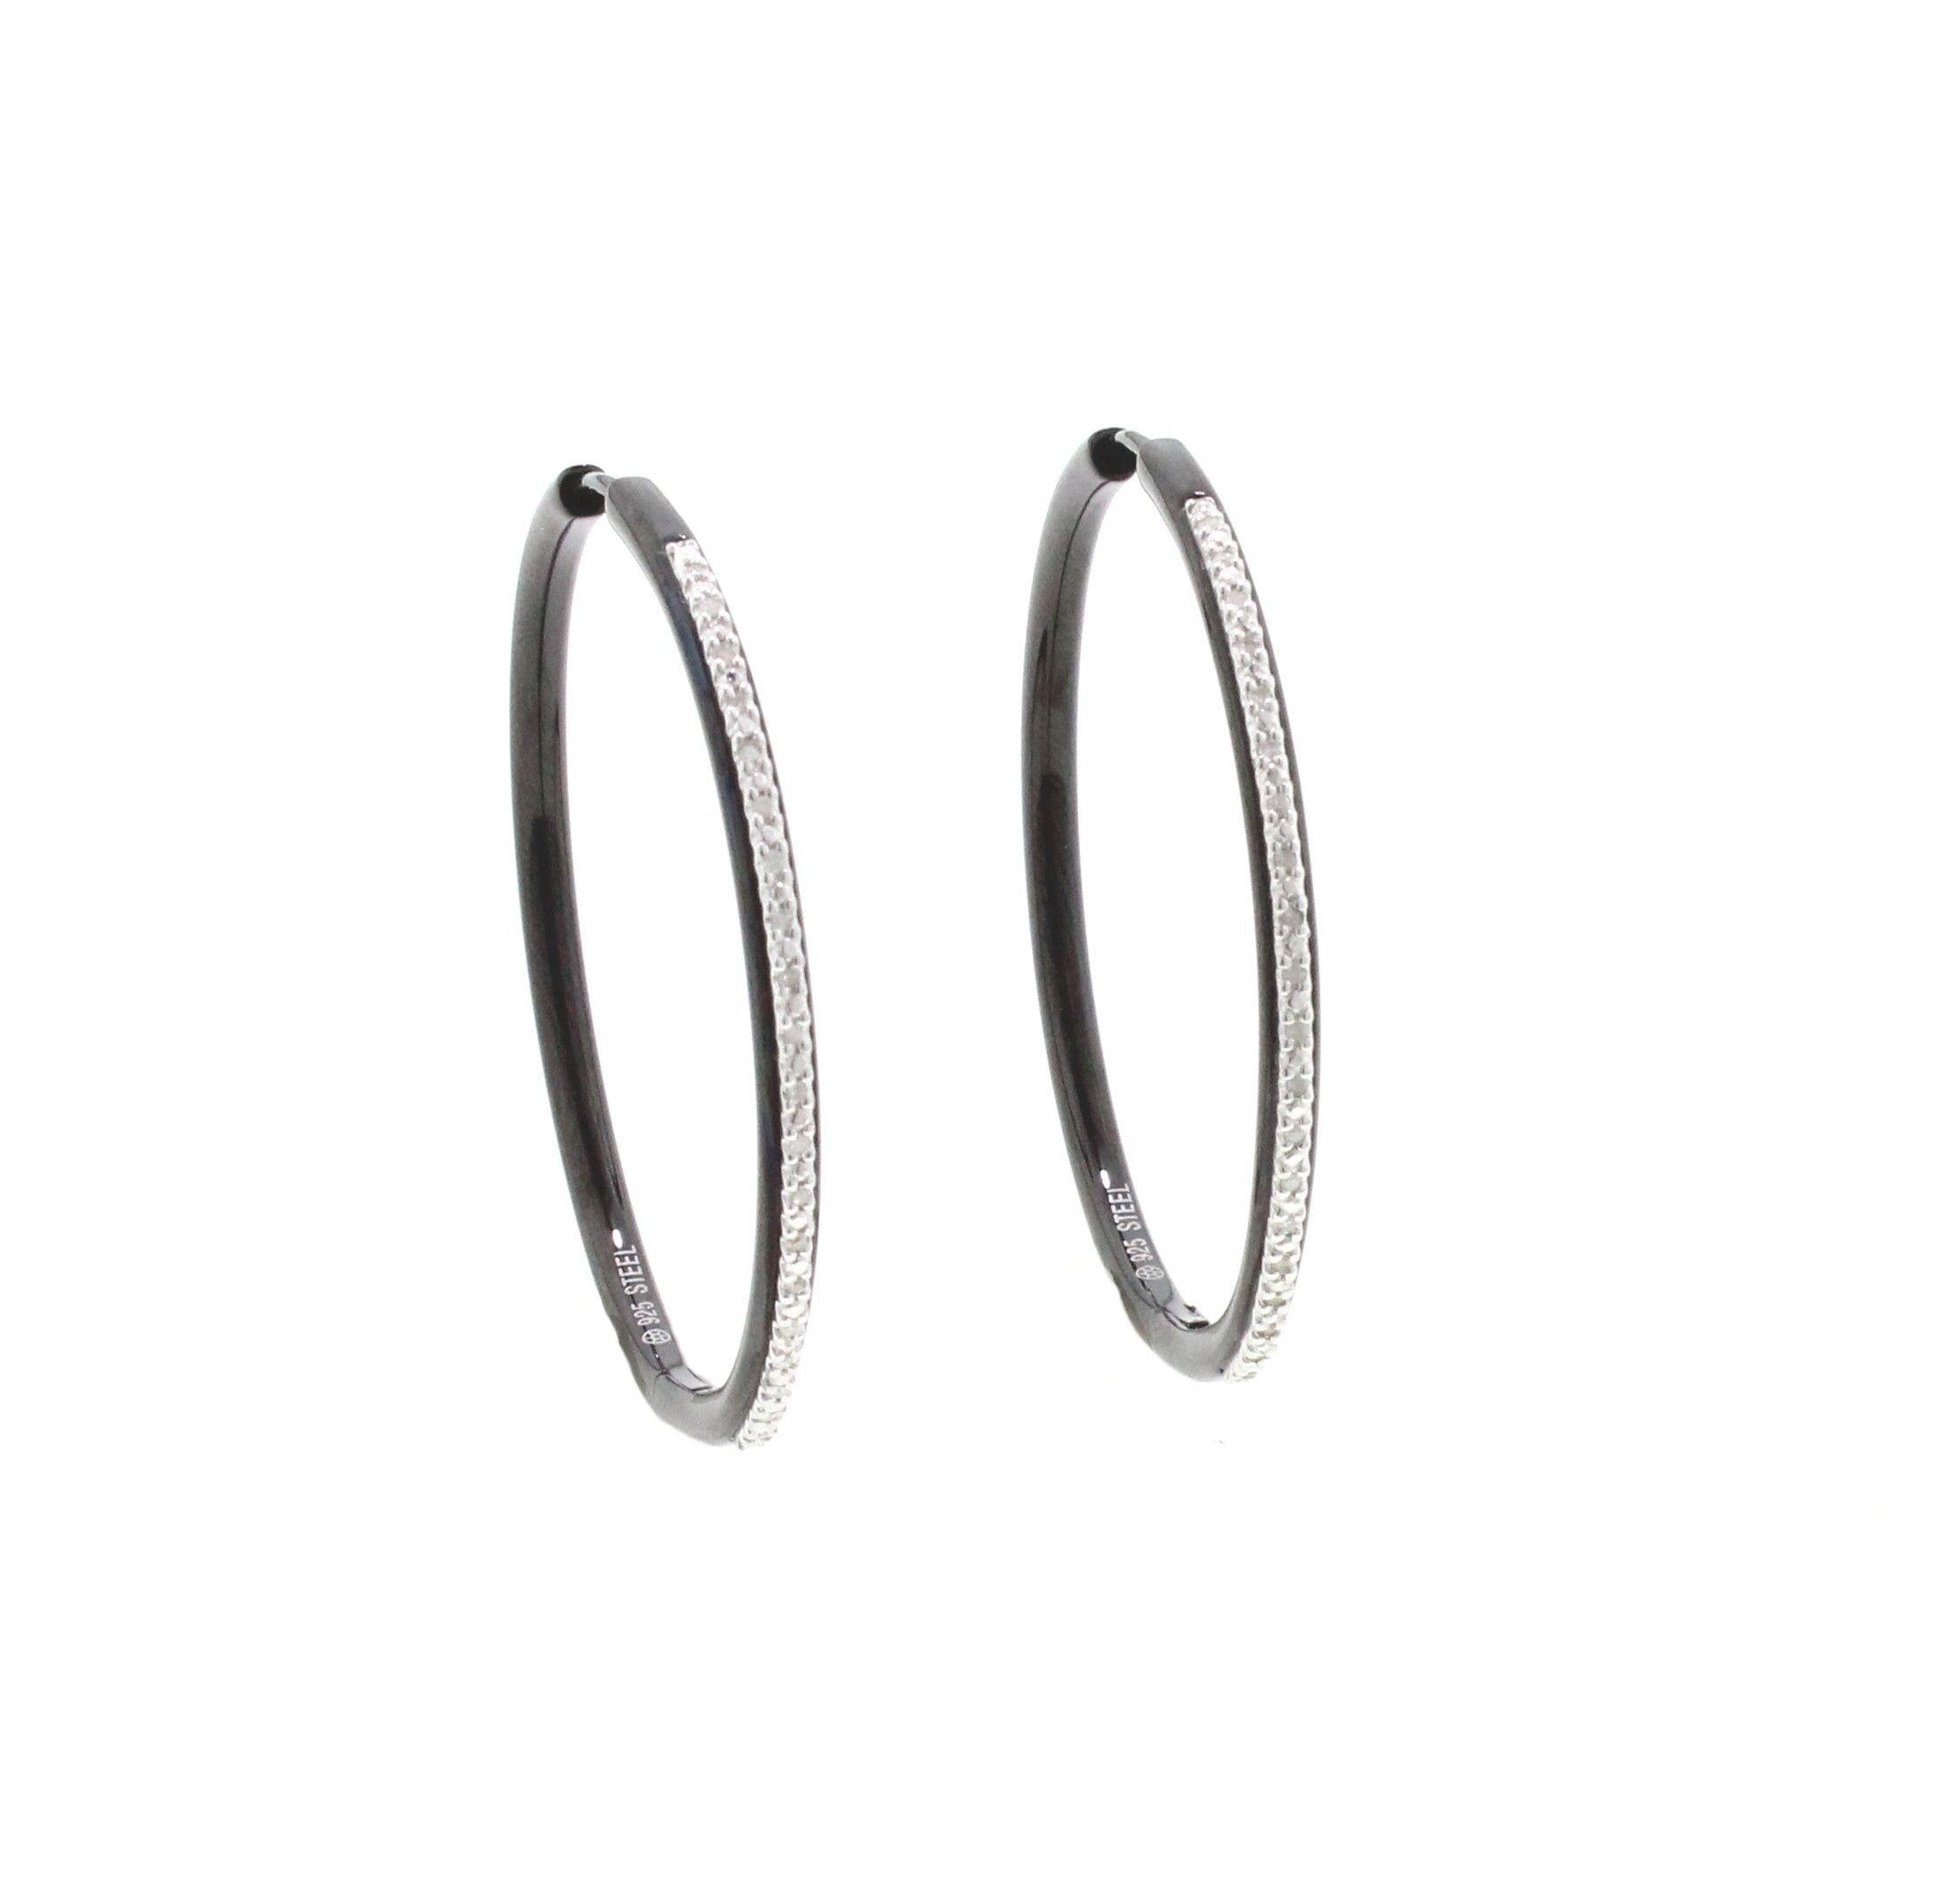 These large hoop earrings are steel with black rhodium and have 0.13 carats of diamonds.